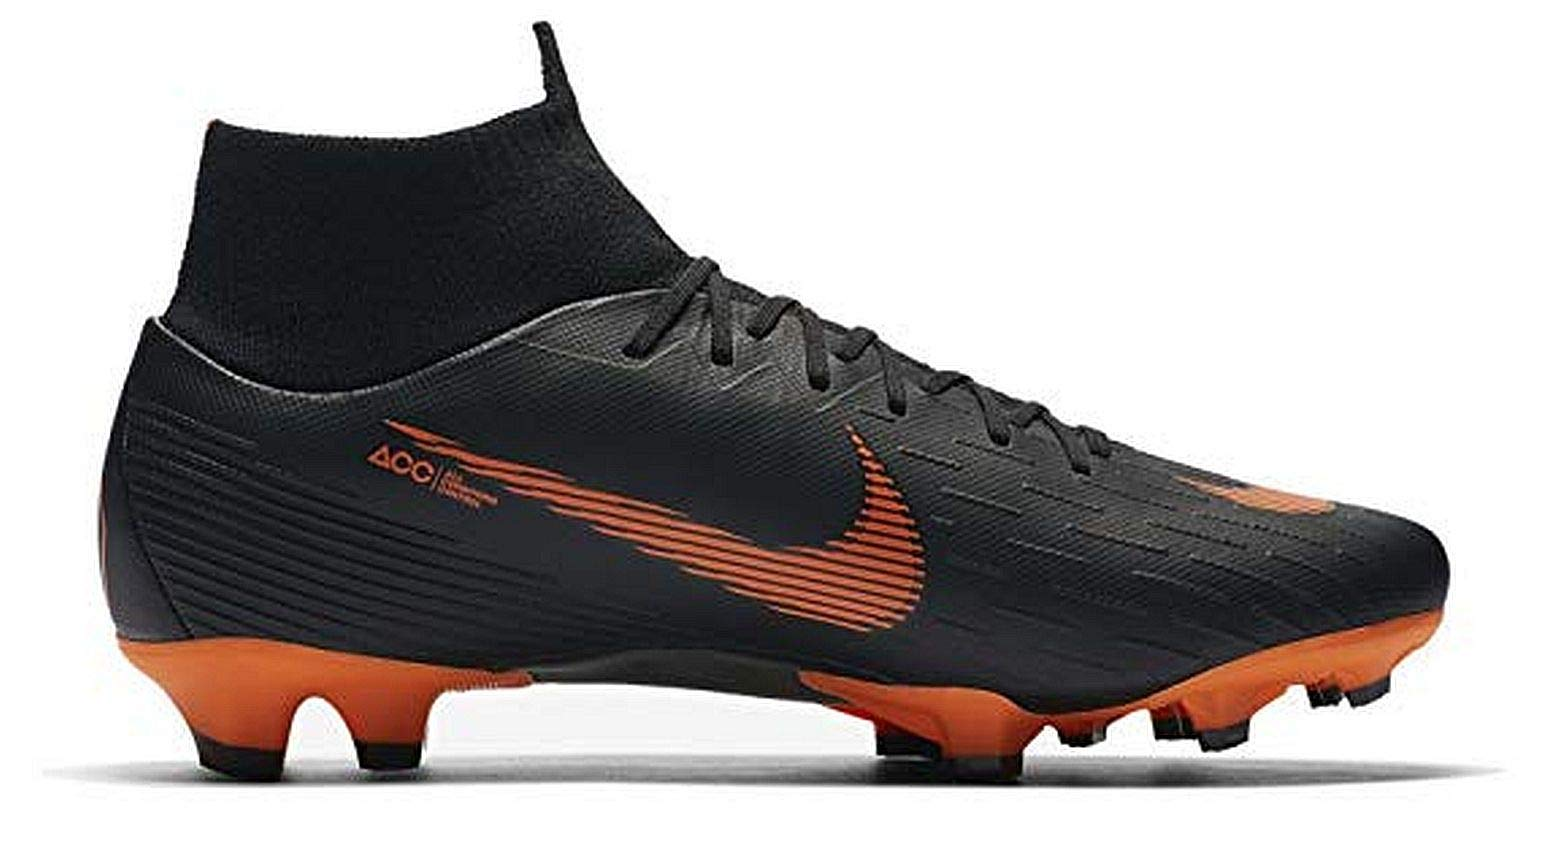 Nike Superfly 6 Pro FG Firm Ground Flyknit Mercurial Soccer Cleats 7.5 M US Black/Total Orange-White